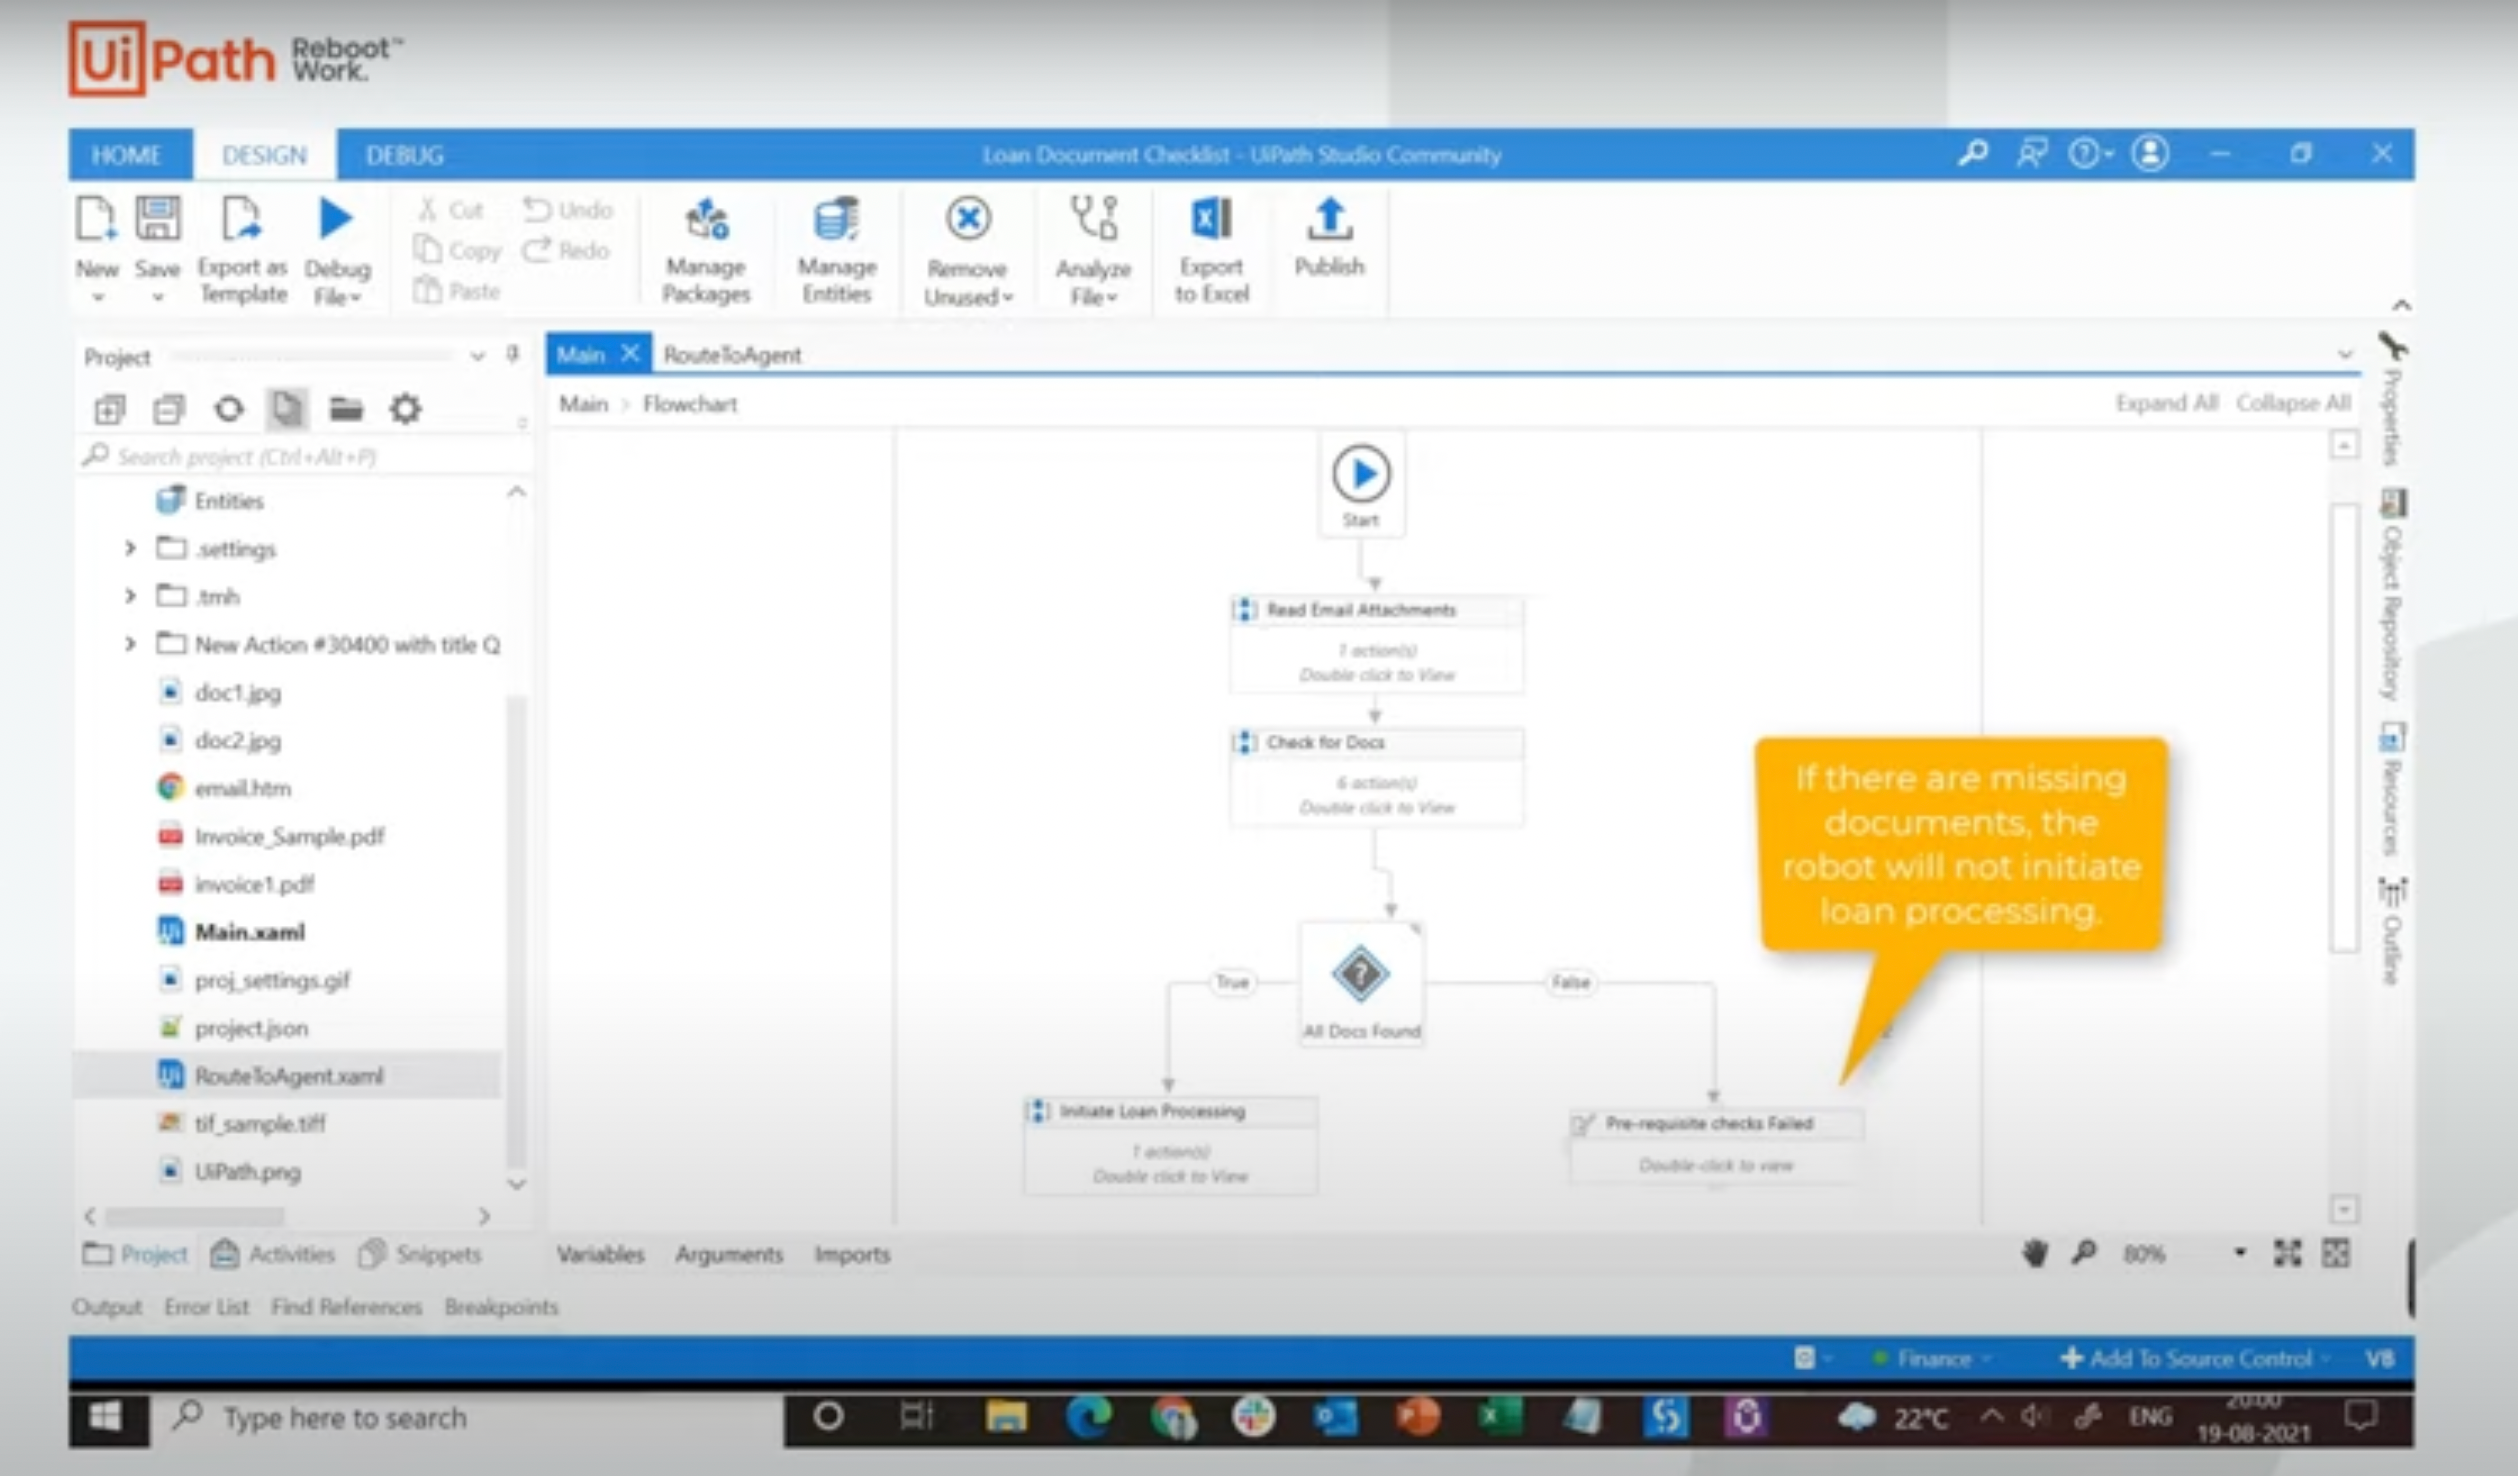 uipath action center demo loan processing workflow